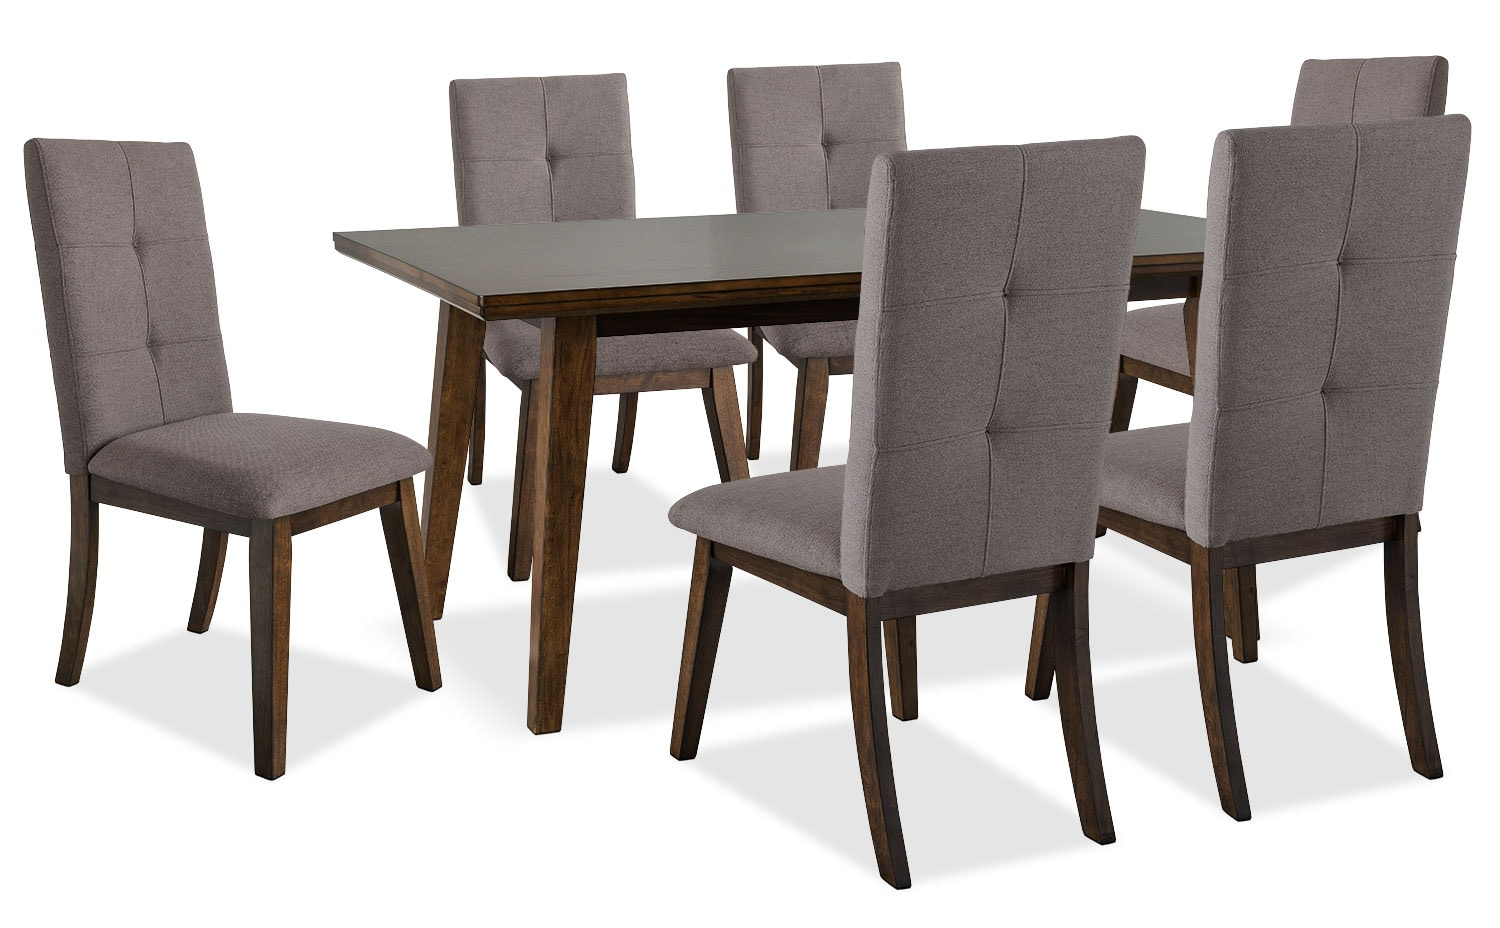 Dining Room Furniture - Chelsea 7-Piece Dining Package with Brown Chairs